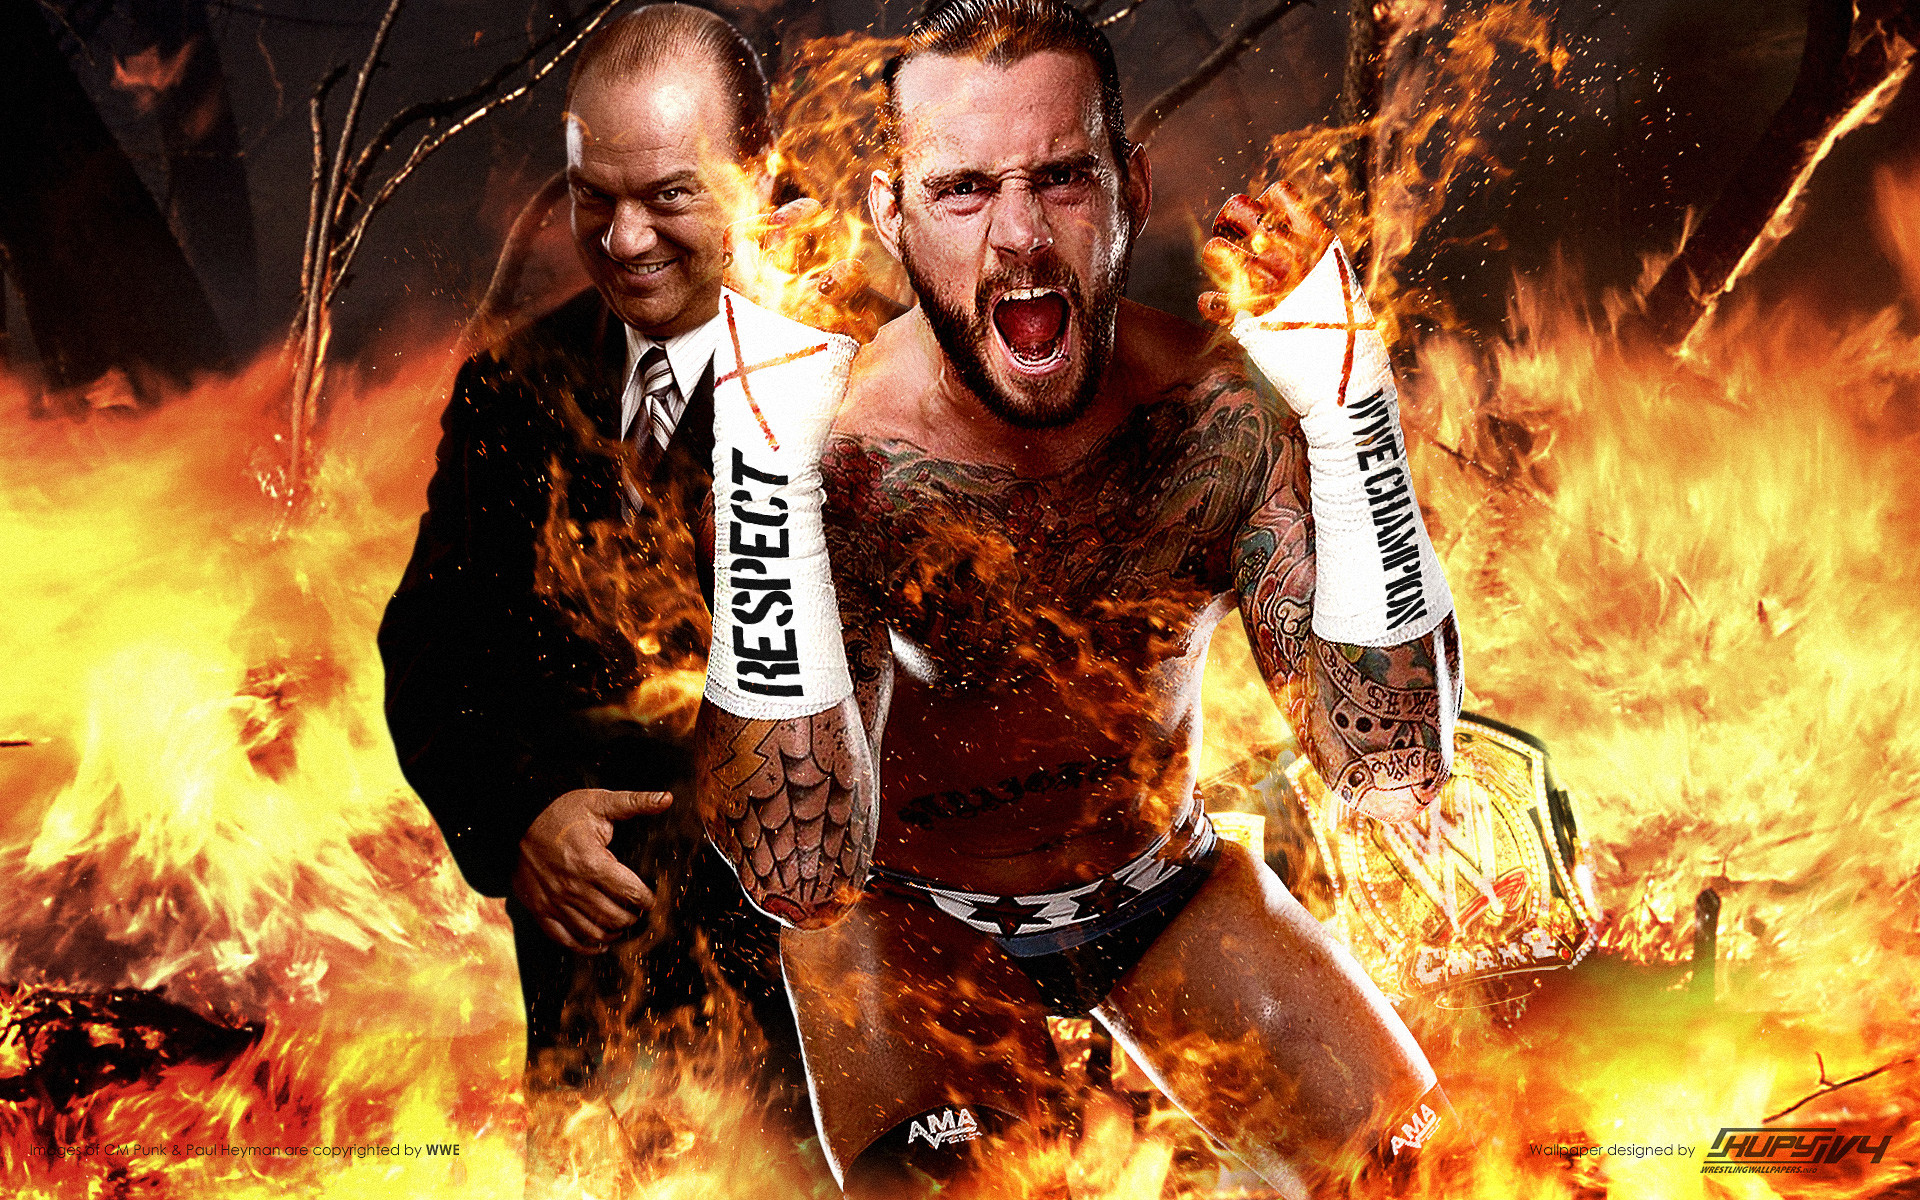 736×1309 px; Wwe Wallpapers | Wwe Full HD Quality Wallpapers